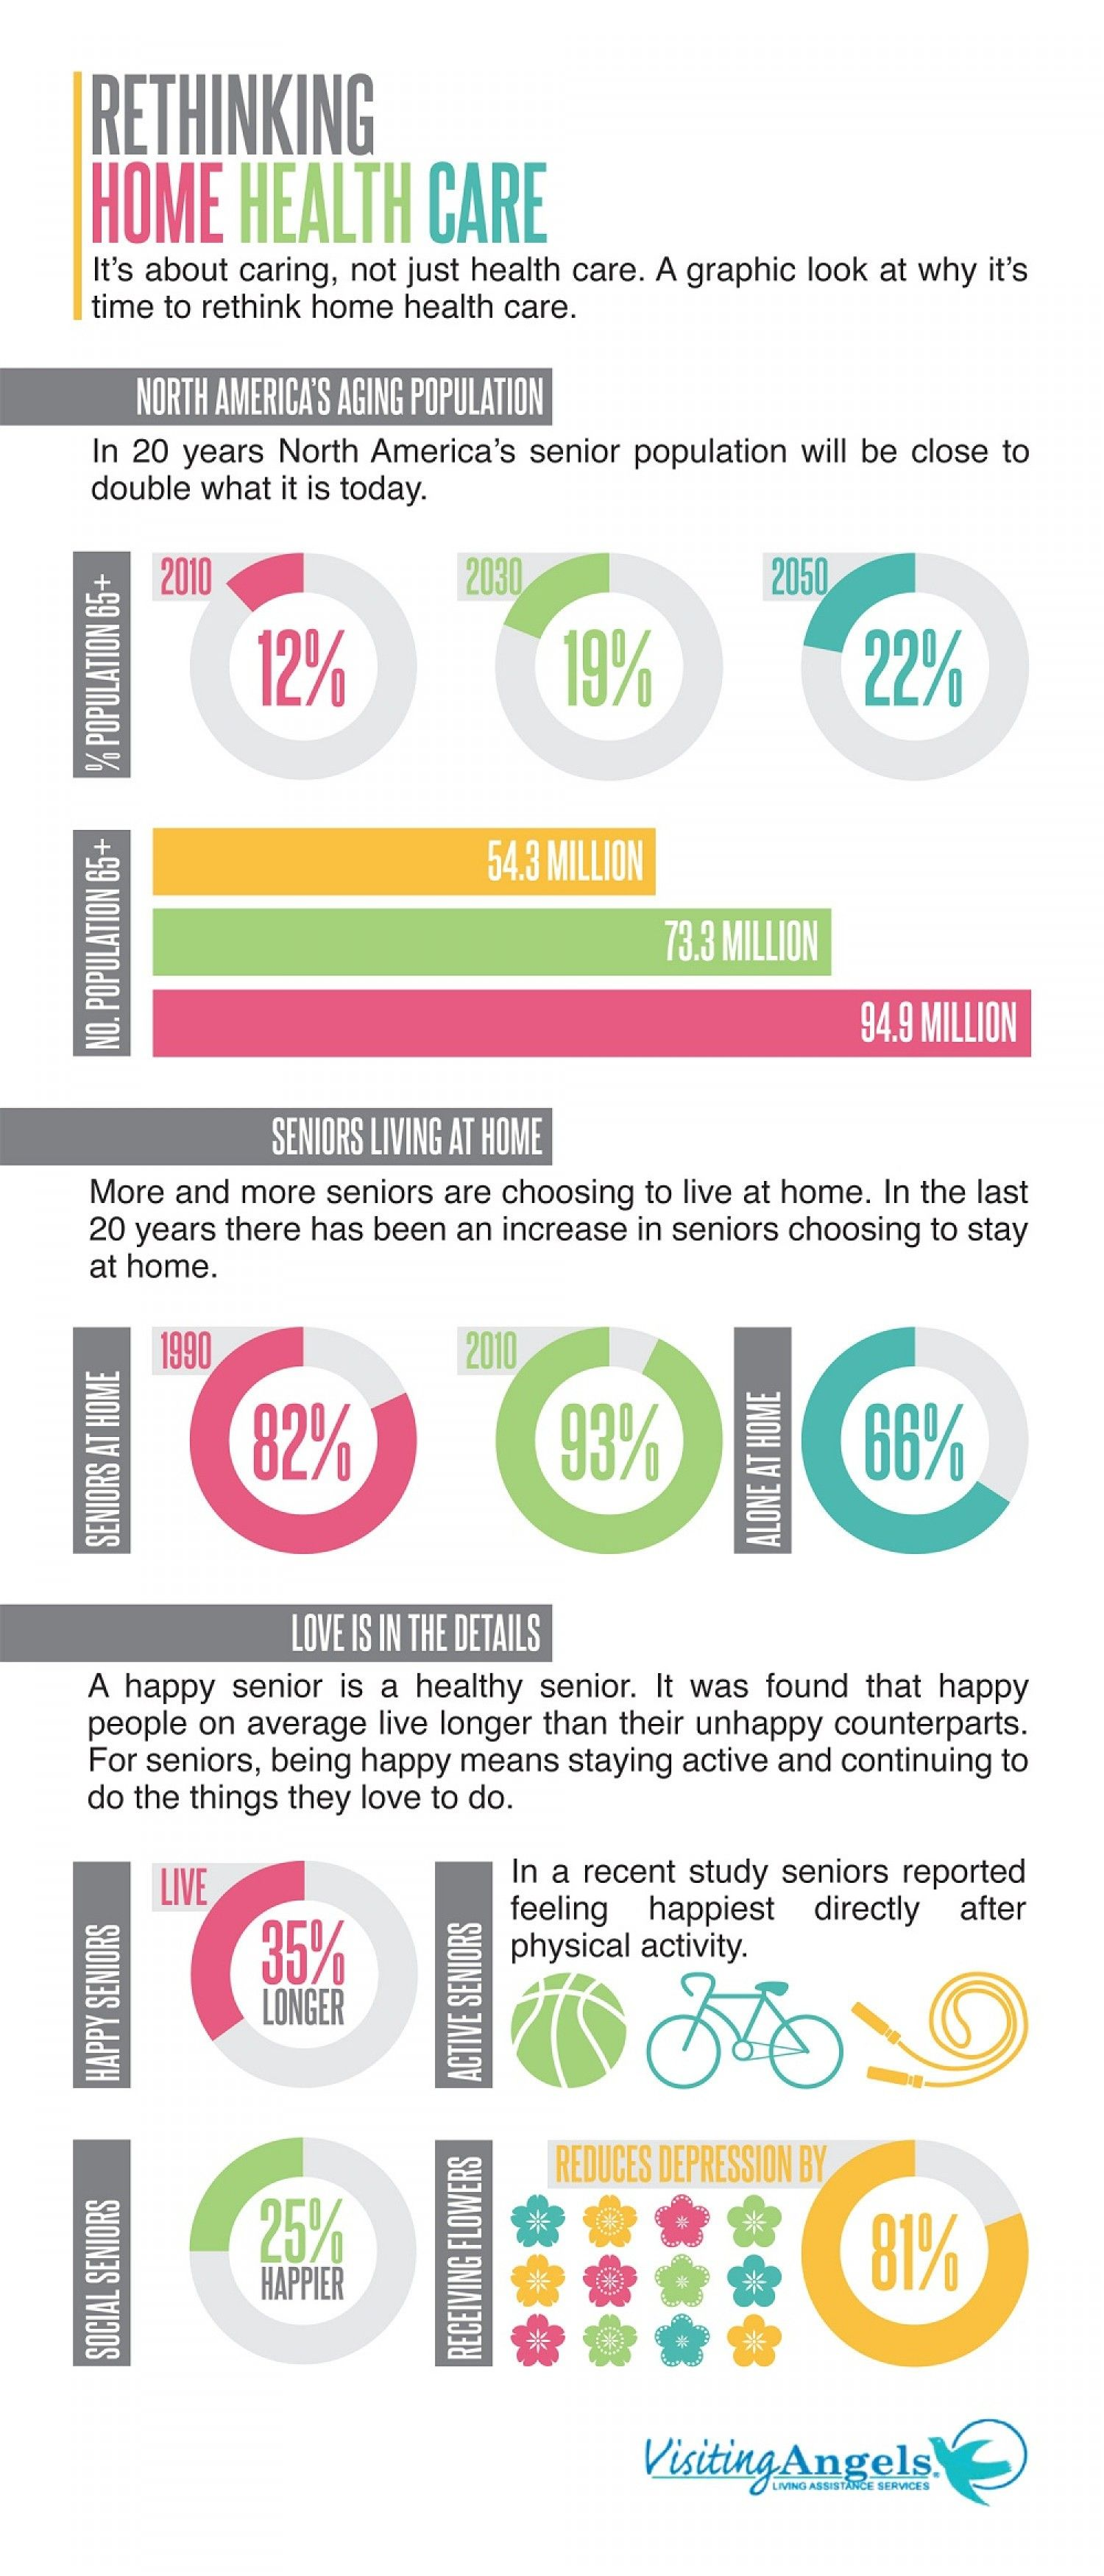 Infographic Rethinking Home Healthcare For Seniors Reposted By